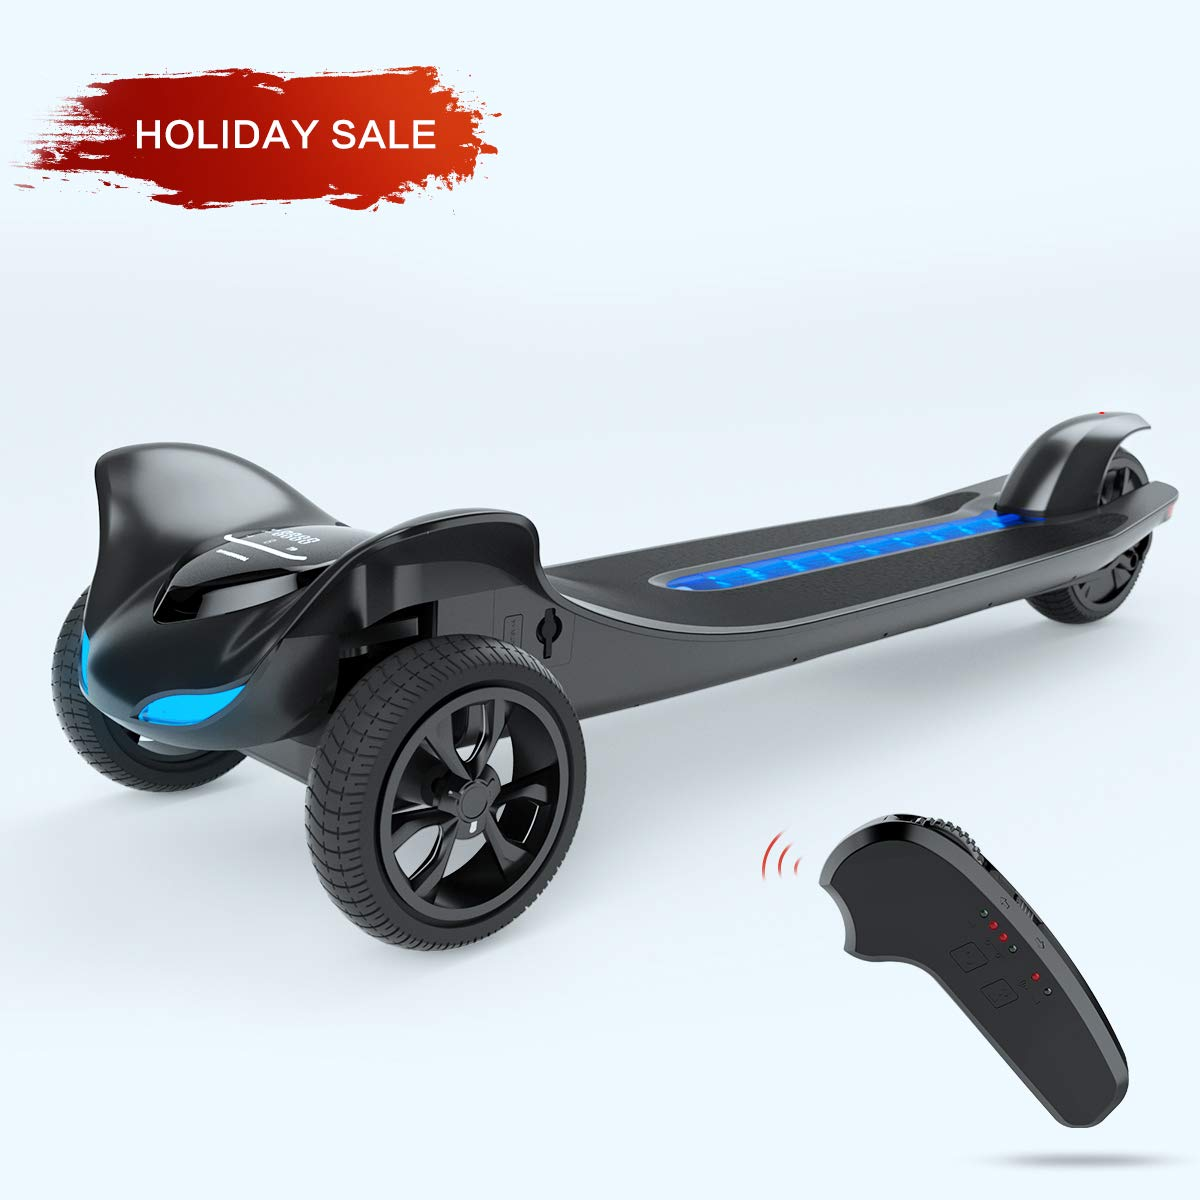 Electric Skateboard For Sale >> Tomoloo Electric Skateboard Three Wheels Electronic Skate Scooter Easy Carry Longboard 250w Hub Motor With App And Wireless Remote Control 15 5mph